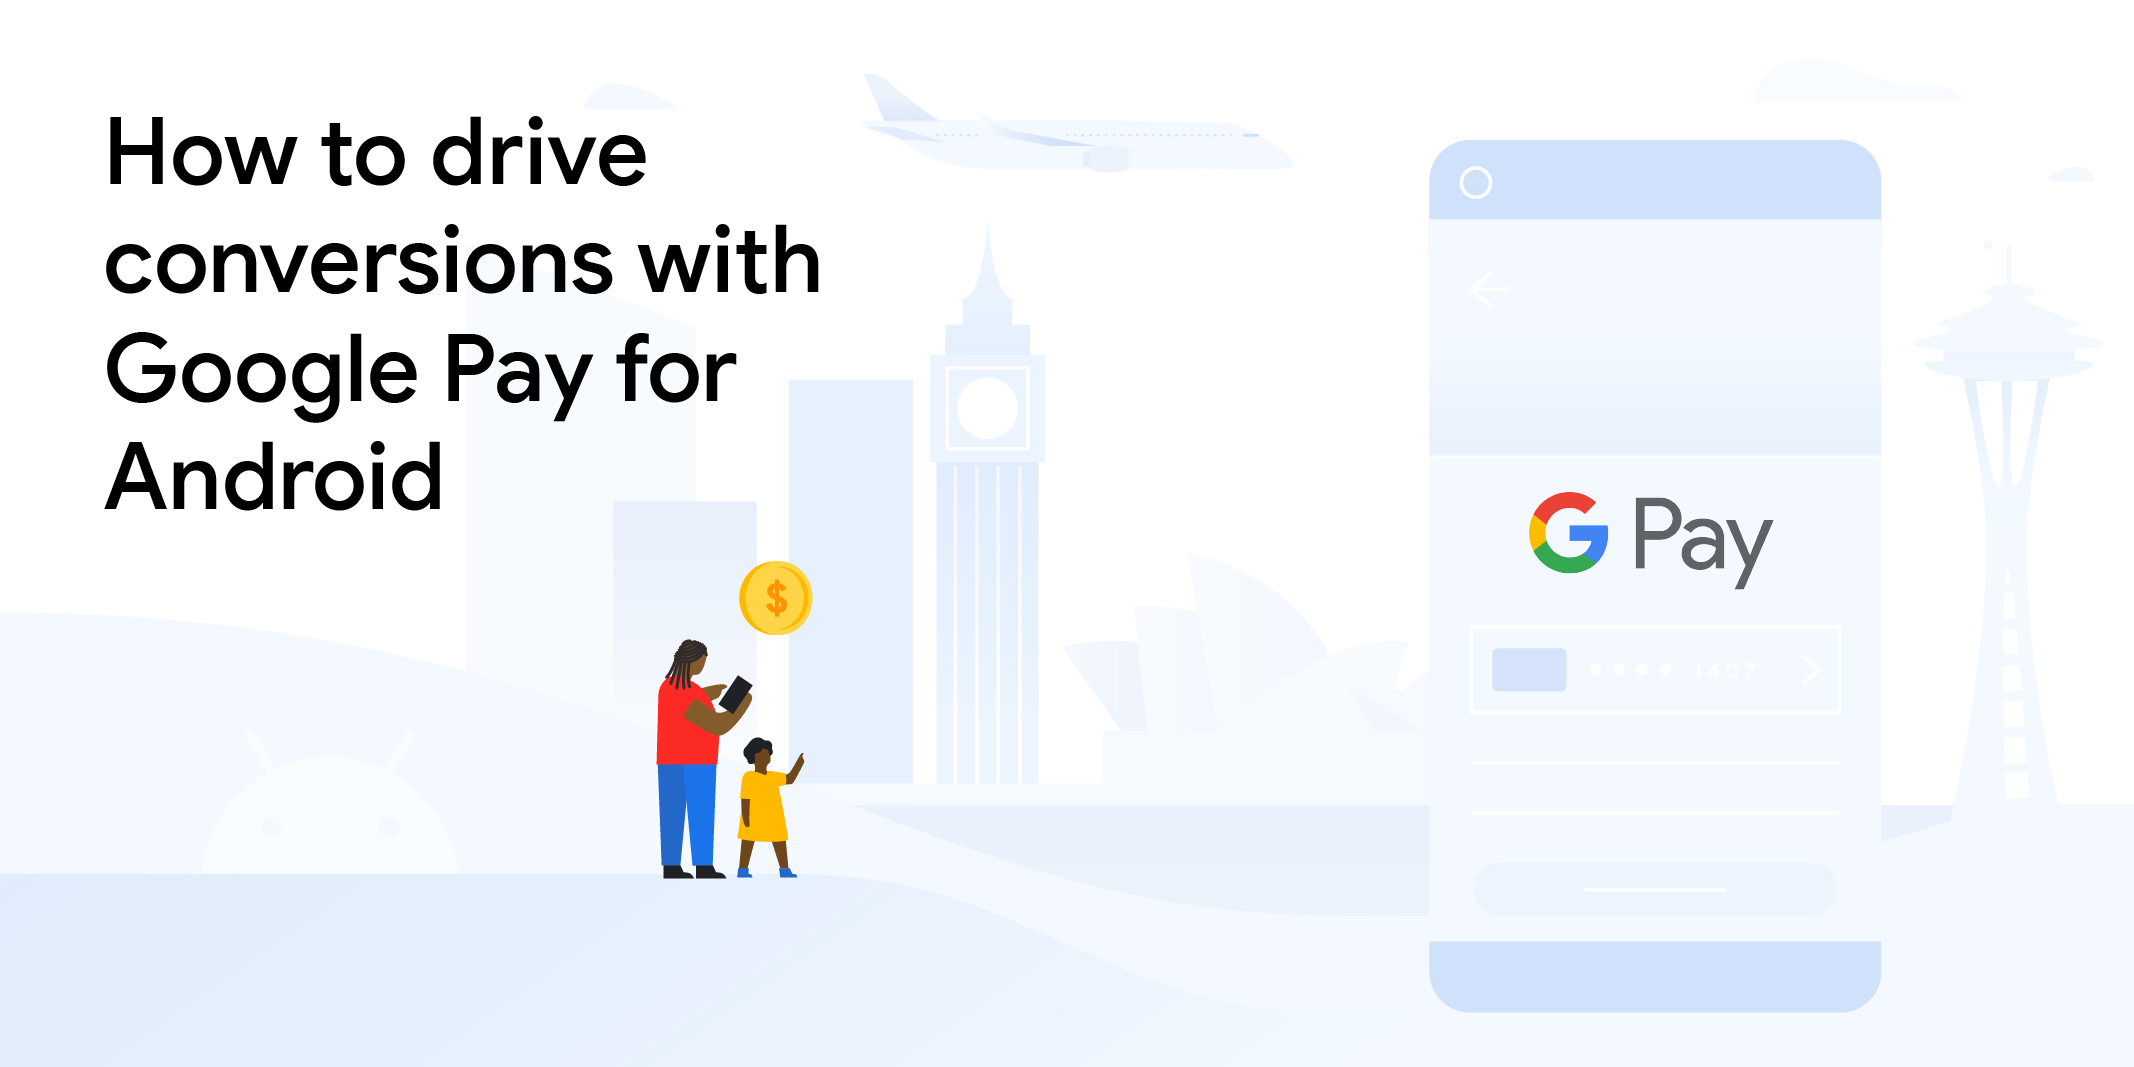 How to drive conversions with Google Pay for Android